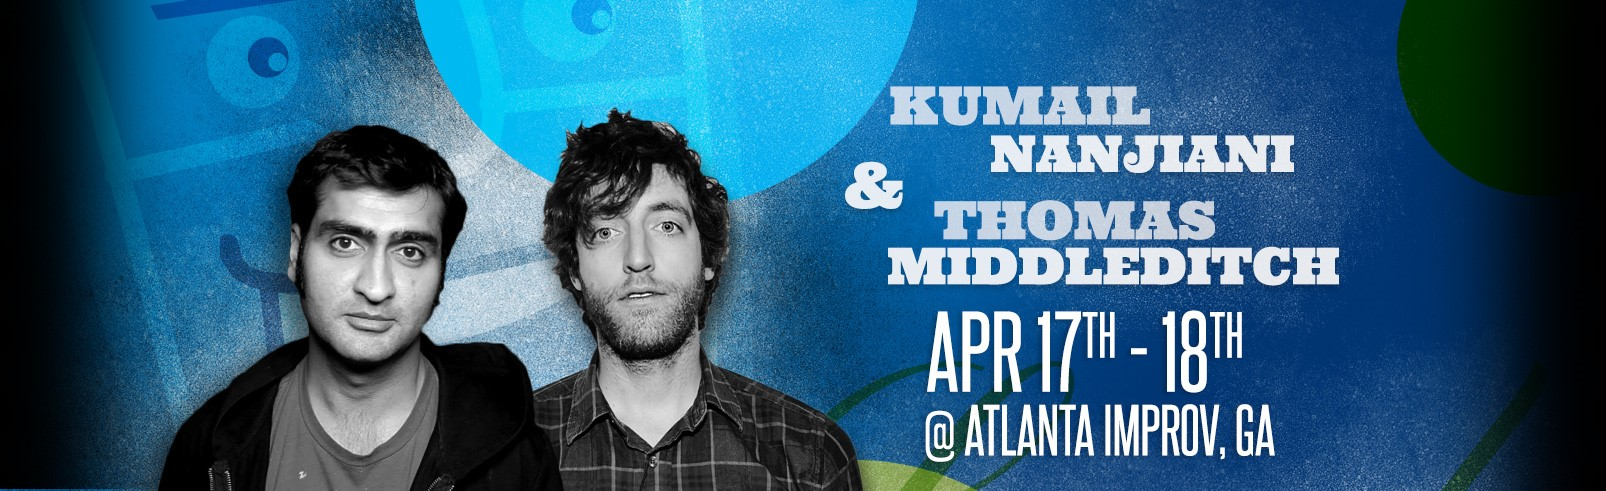 Kumail Nanjiani & Thomas Middleditch